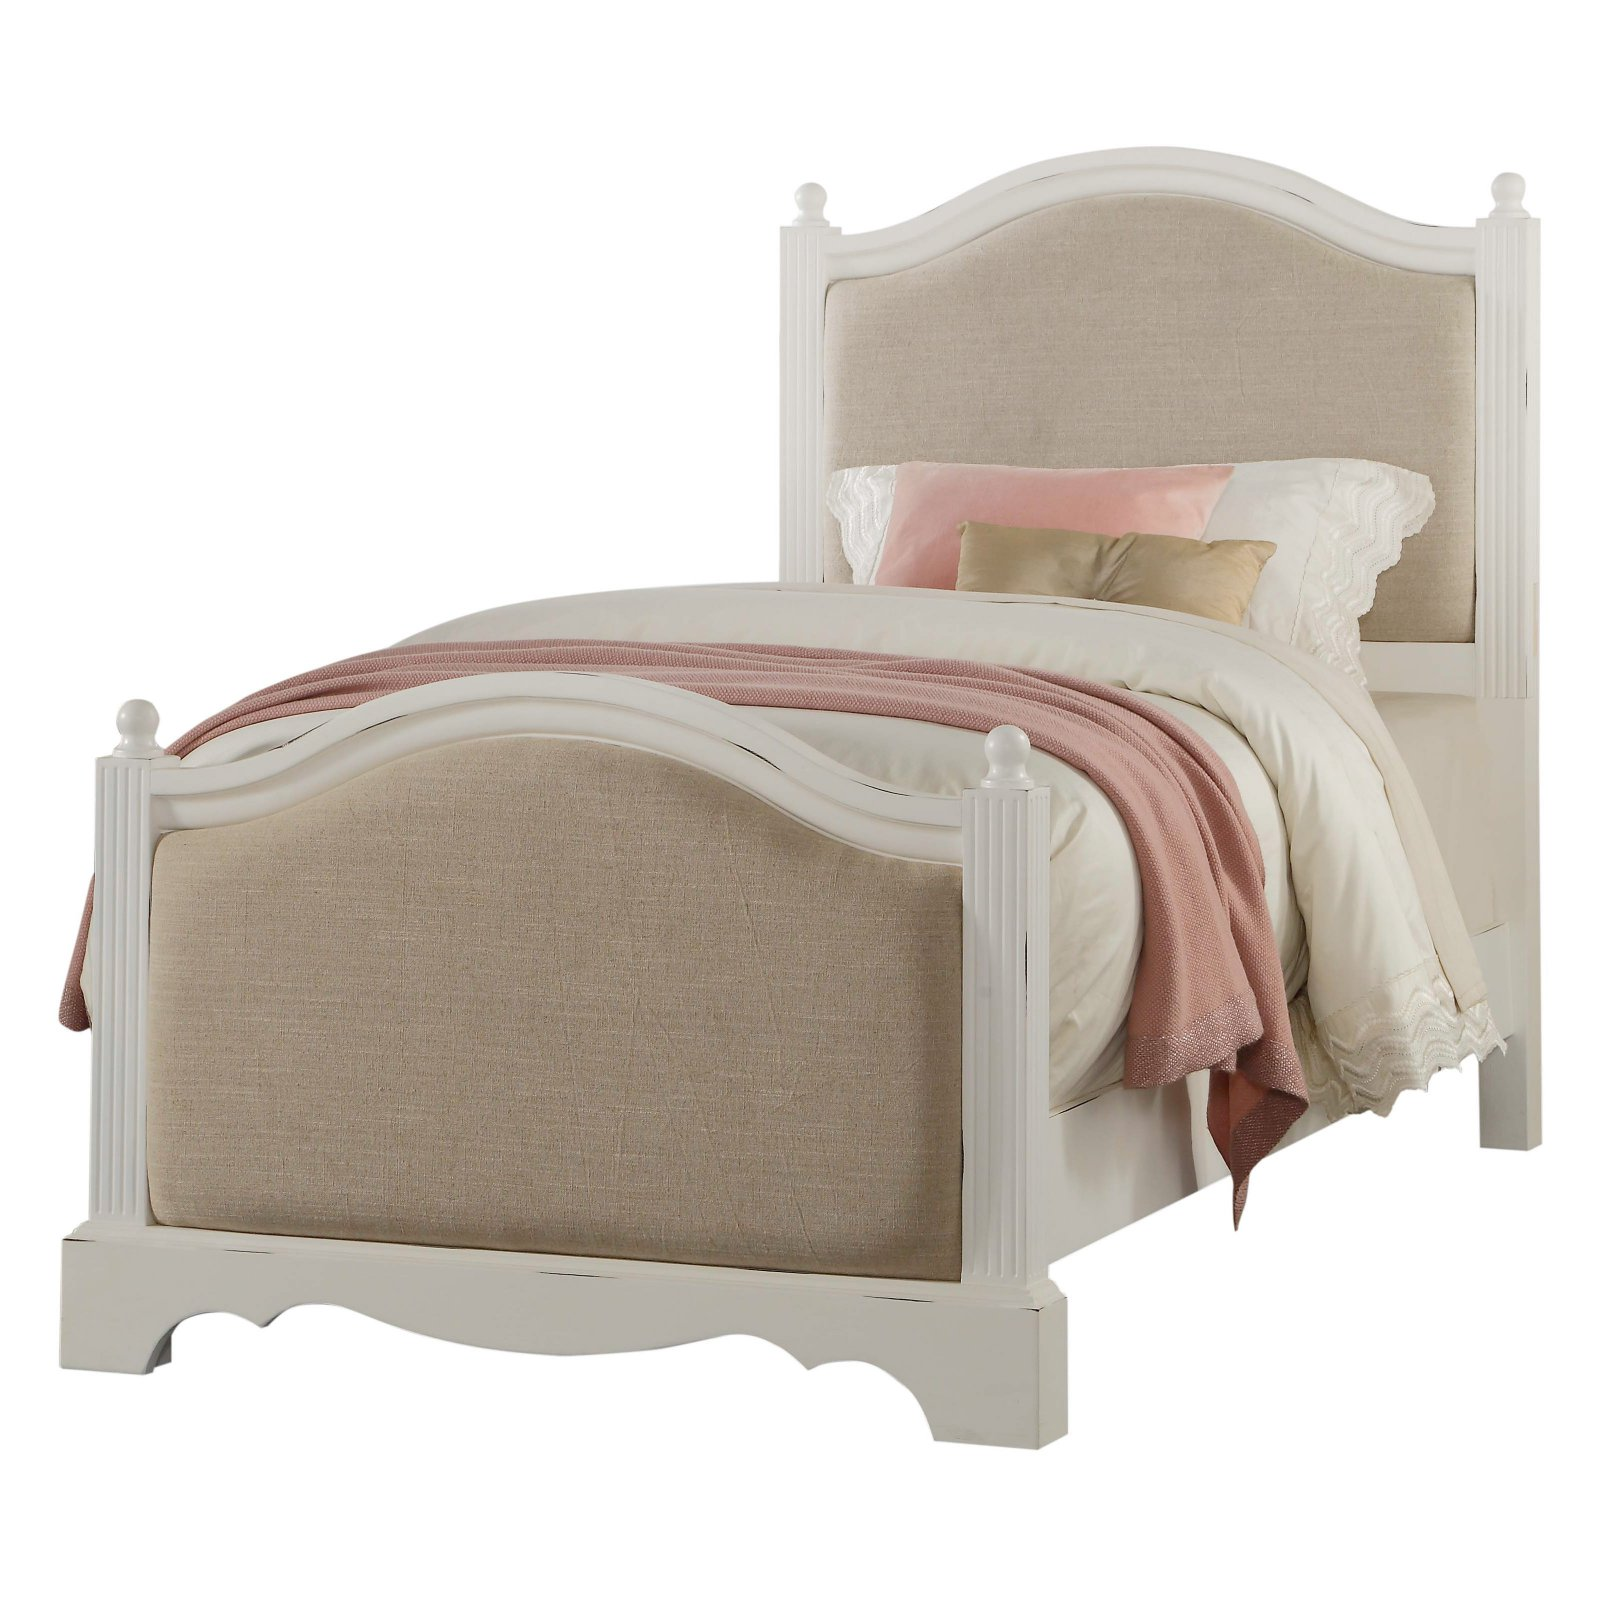 f711f46f008efa Acme Furniture Morre Low Profile Bed, Size: Full in 2019 | Products ...